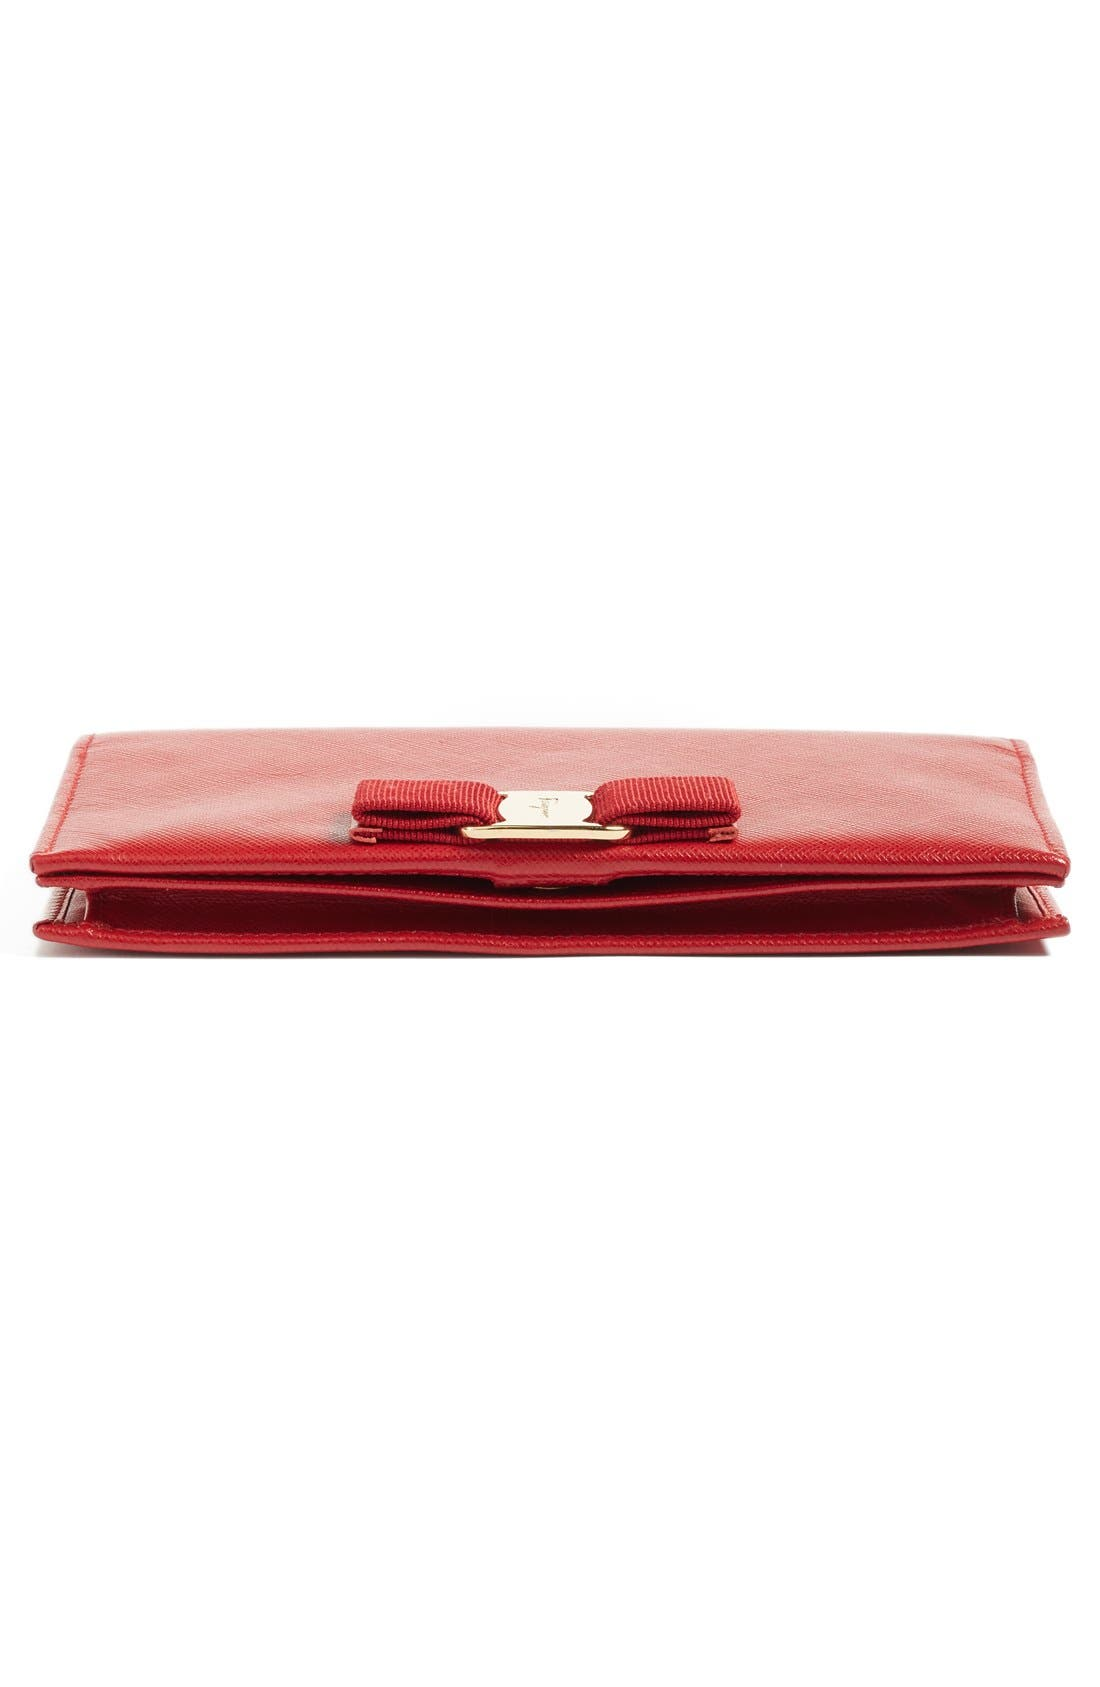 Salavatore Ferragamo Vara Leather Wallet on a Chain,                             Alternate thumbnail 6, color,                             Red